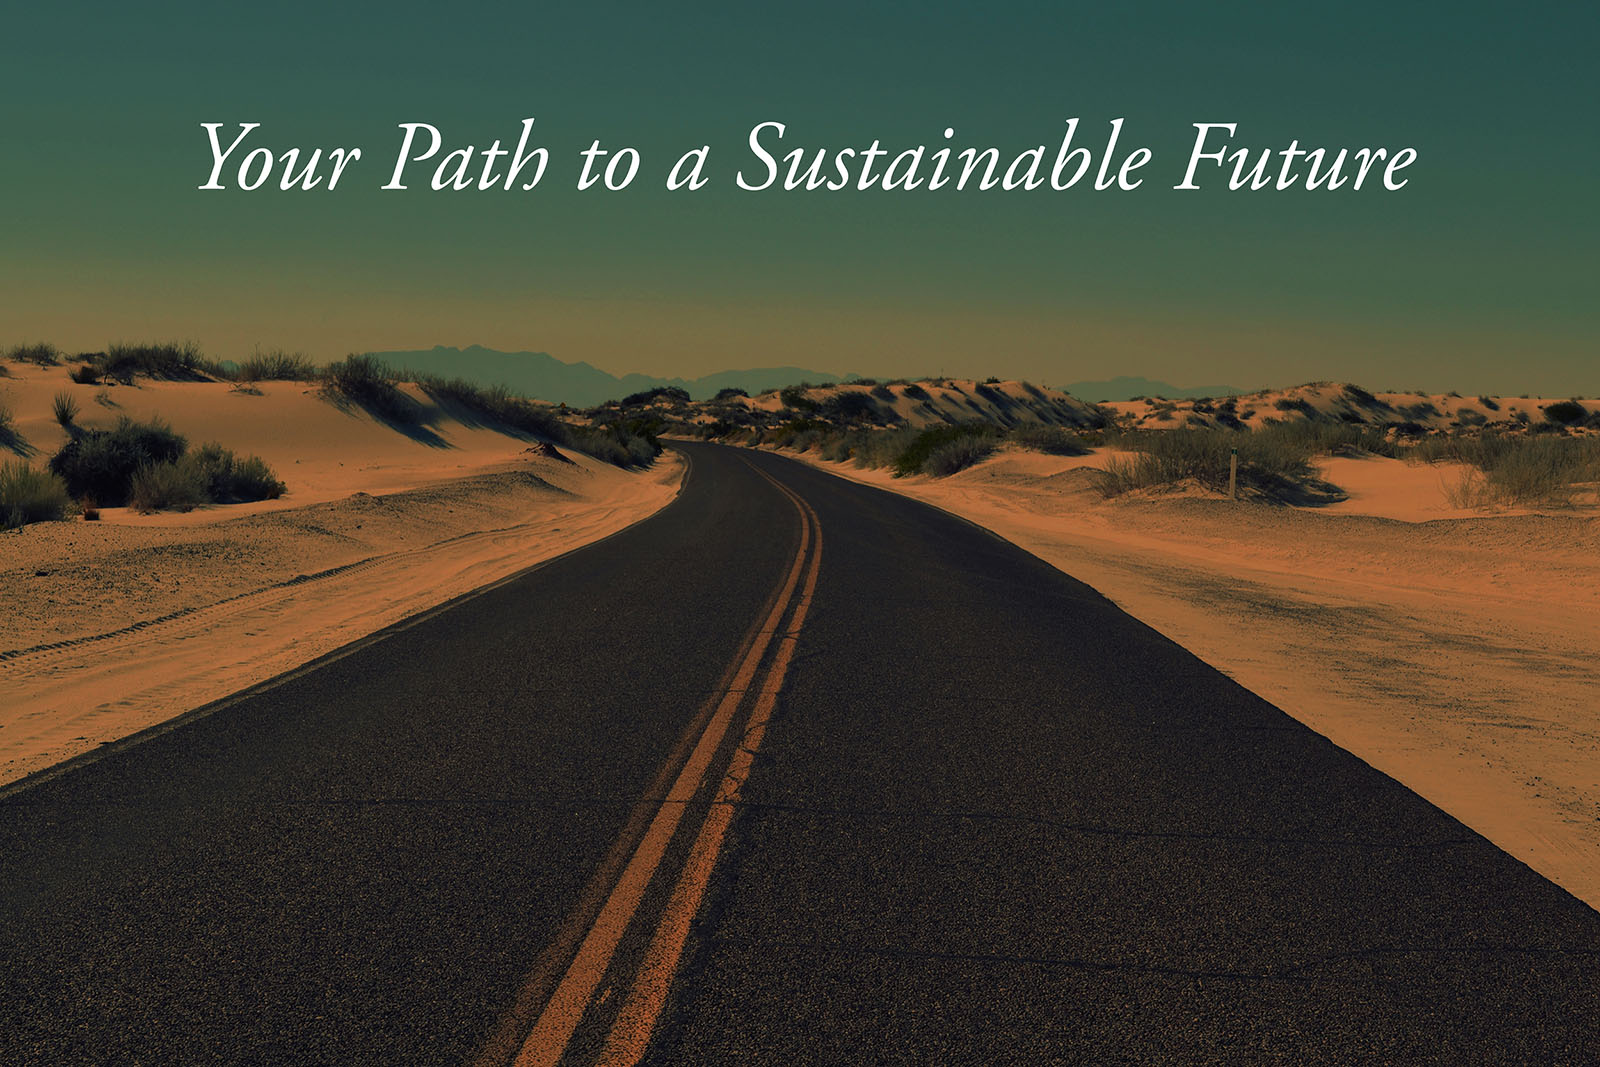 Your Path to a Sustainable Future